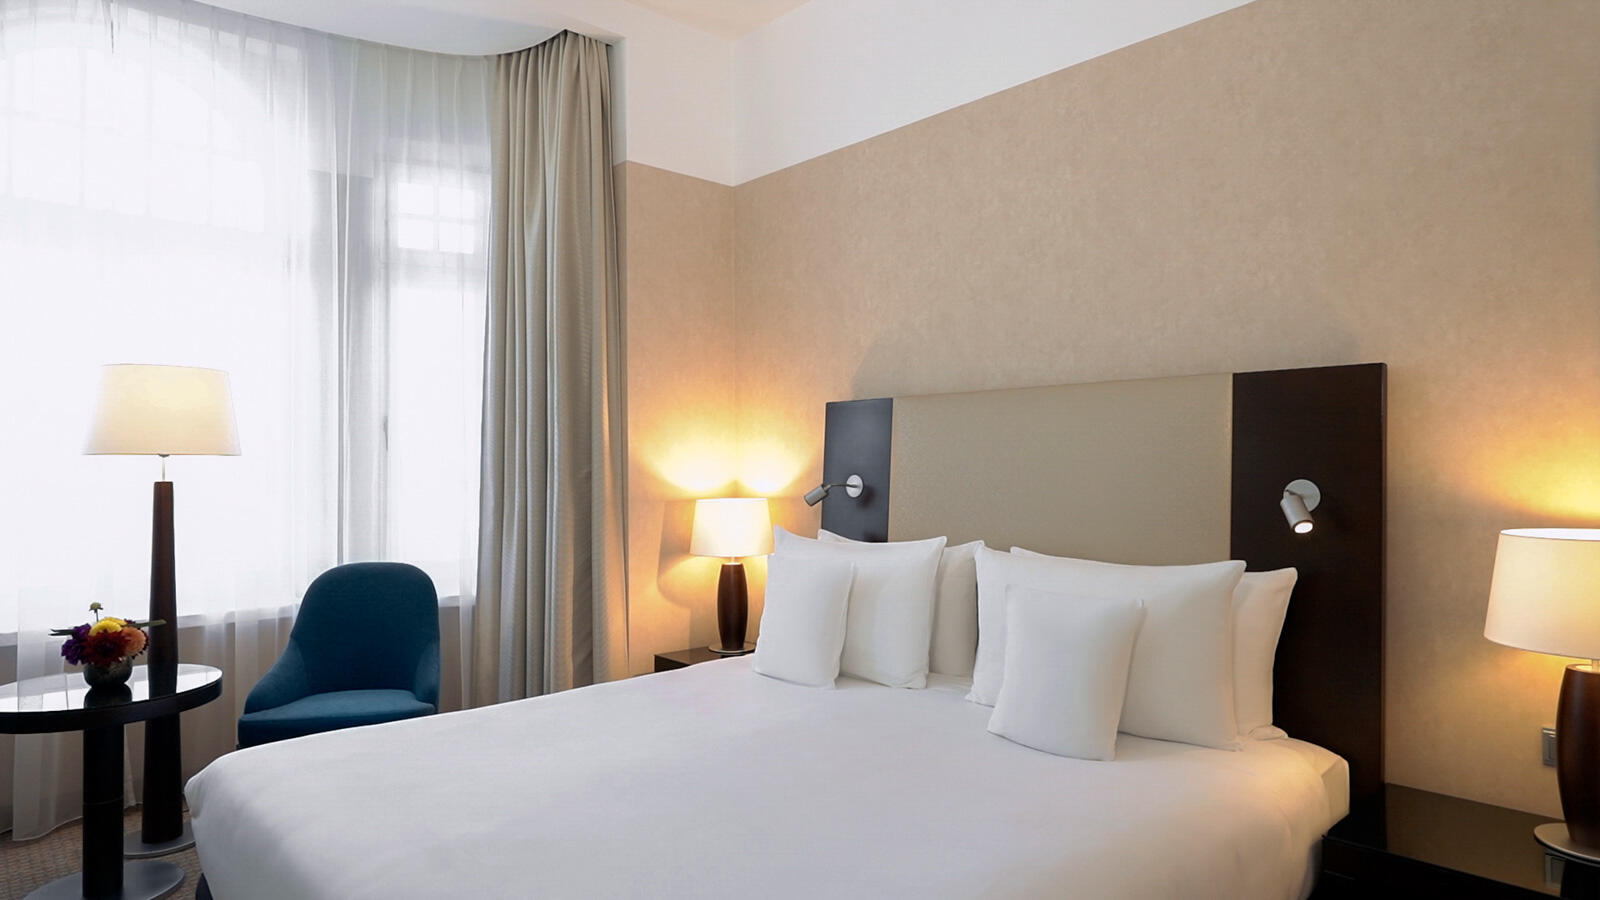 Deluxe Business at Polonia Palace Hotel, Warsaw